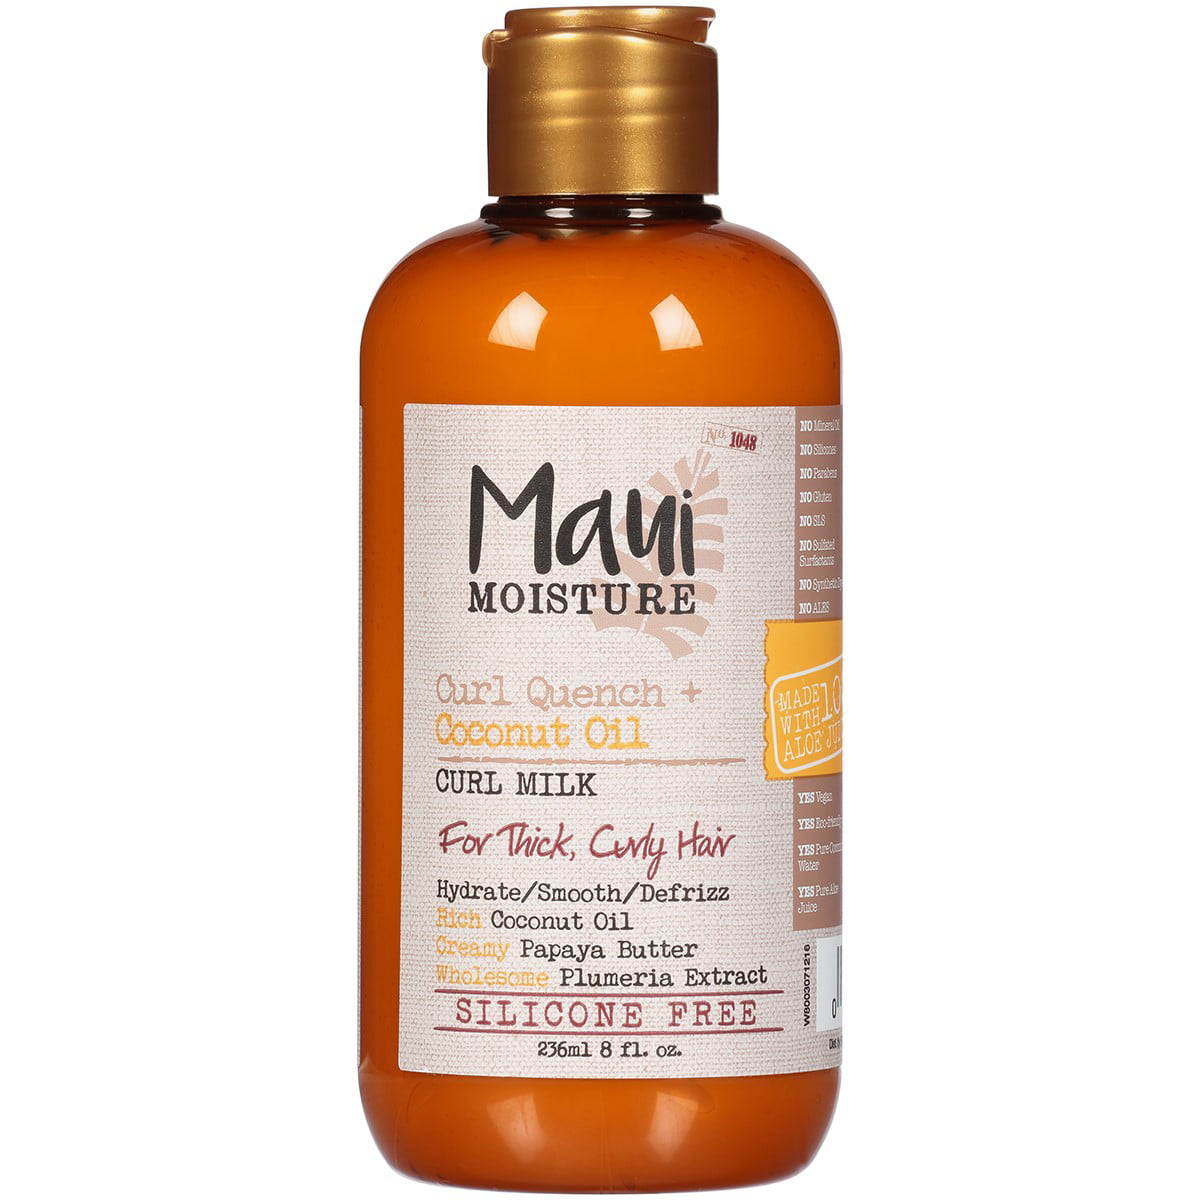 Maui Moisture Curl Quench + Coconut Oil Anti Frizz Curl Defining Hair Milk  to Hydrate and Detangle Tight Curly Hair, Softening Leave In Treatment, ...